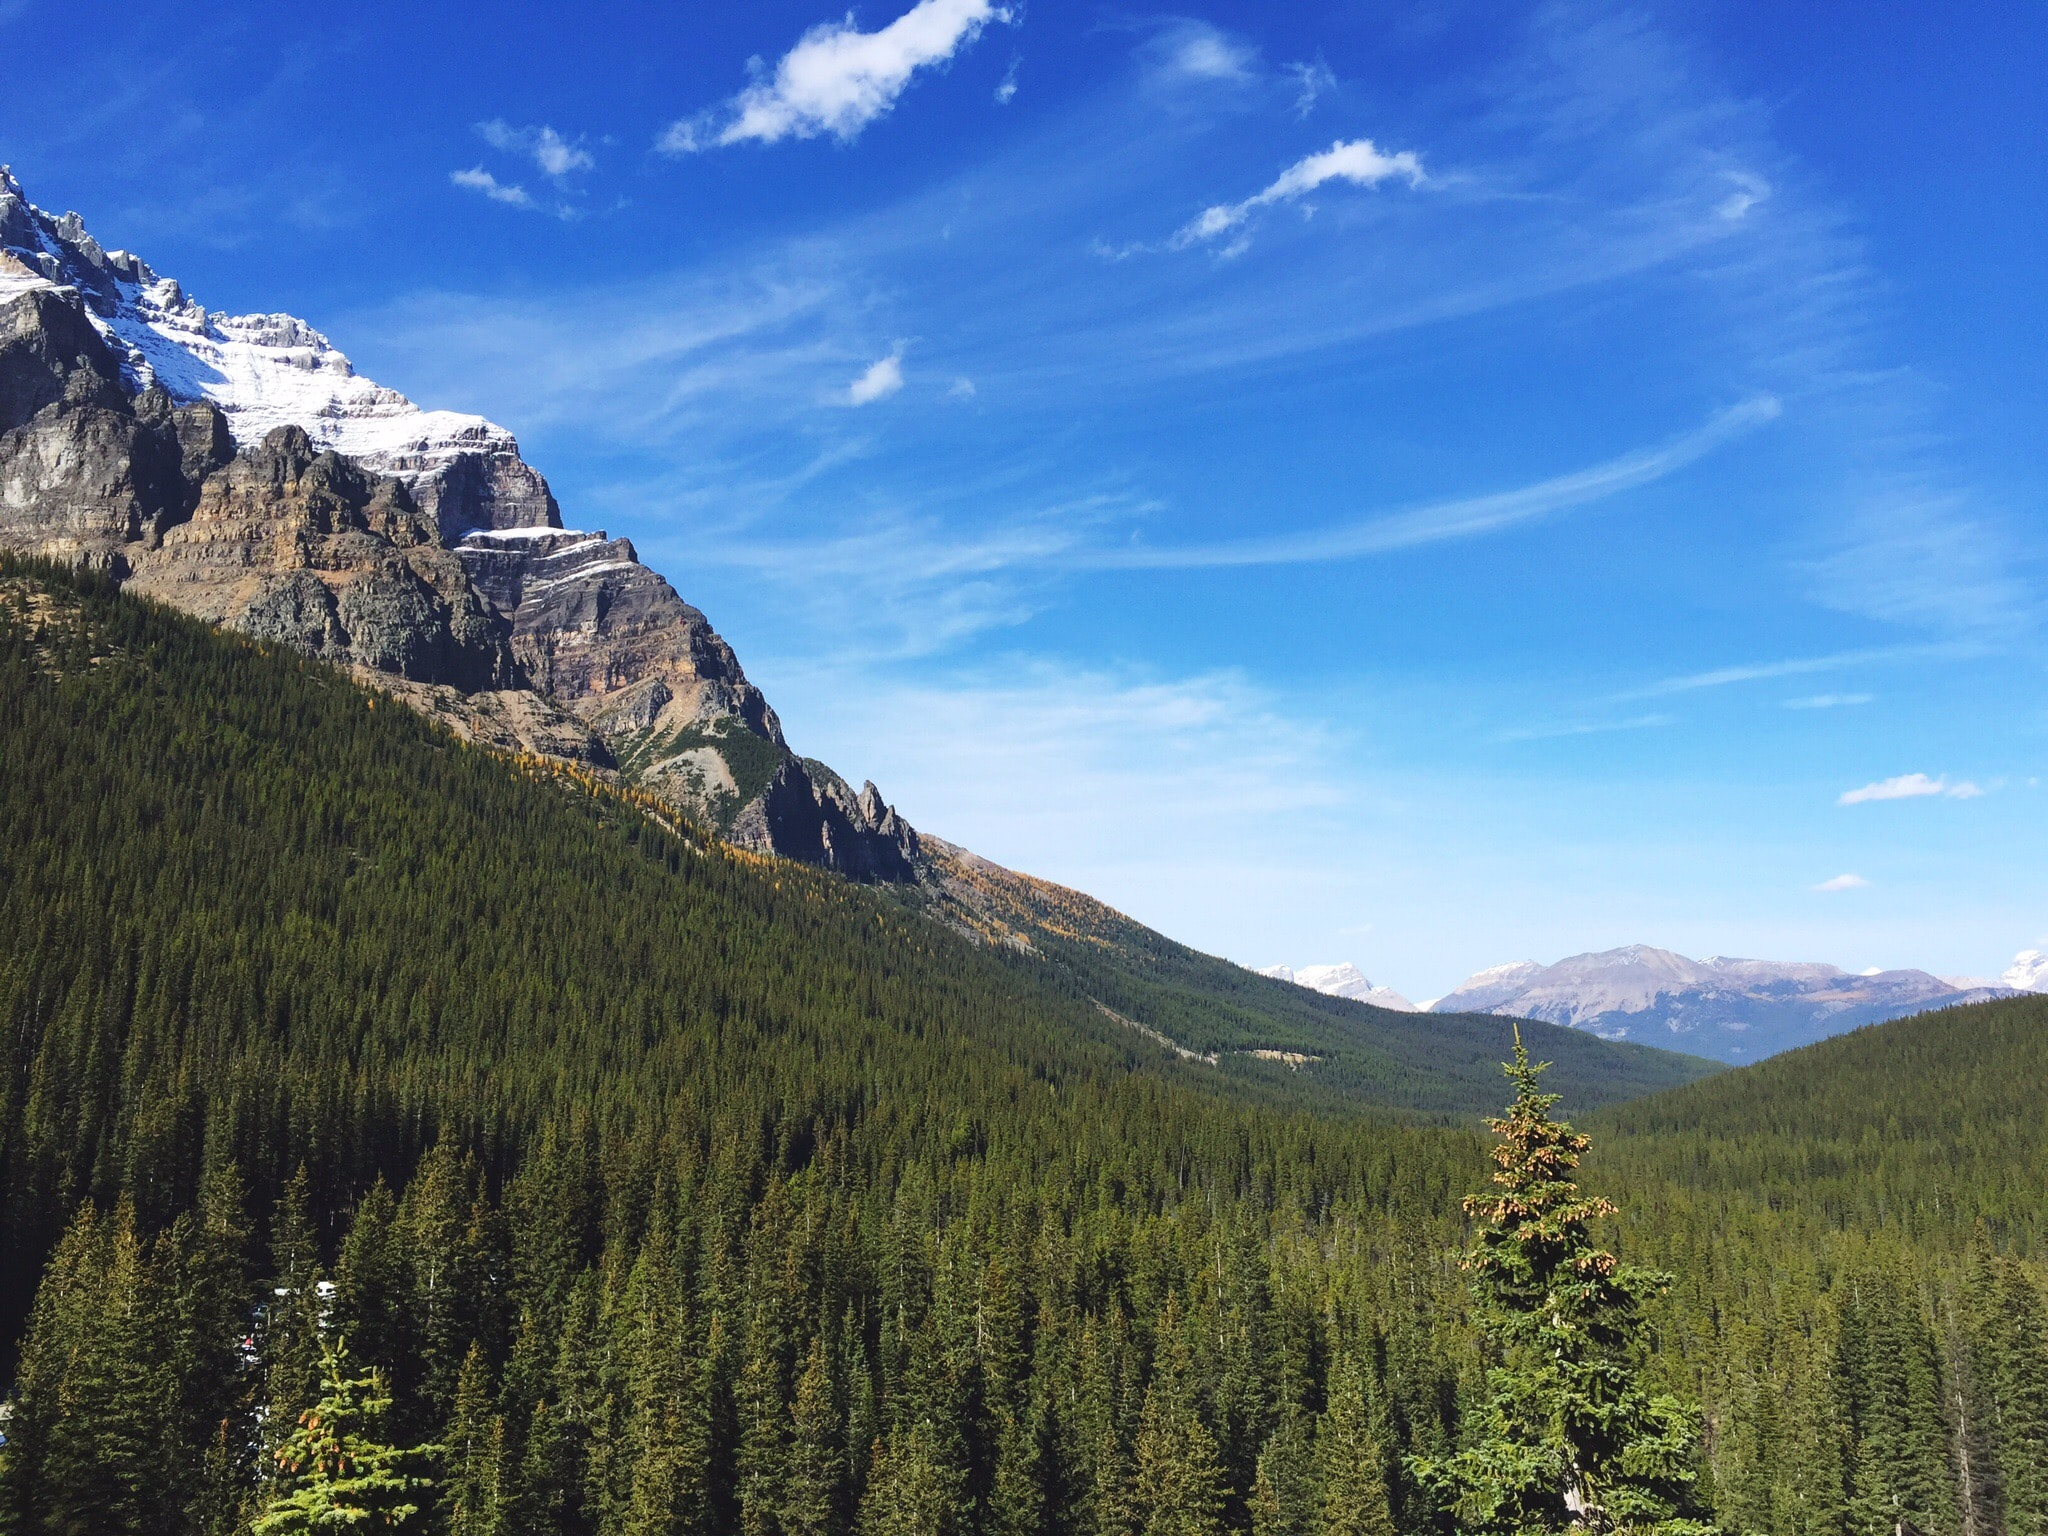 Snow-topped mountains and evergreen woods near Moraine Lake